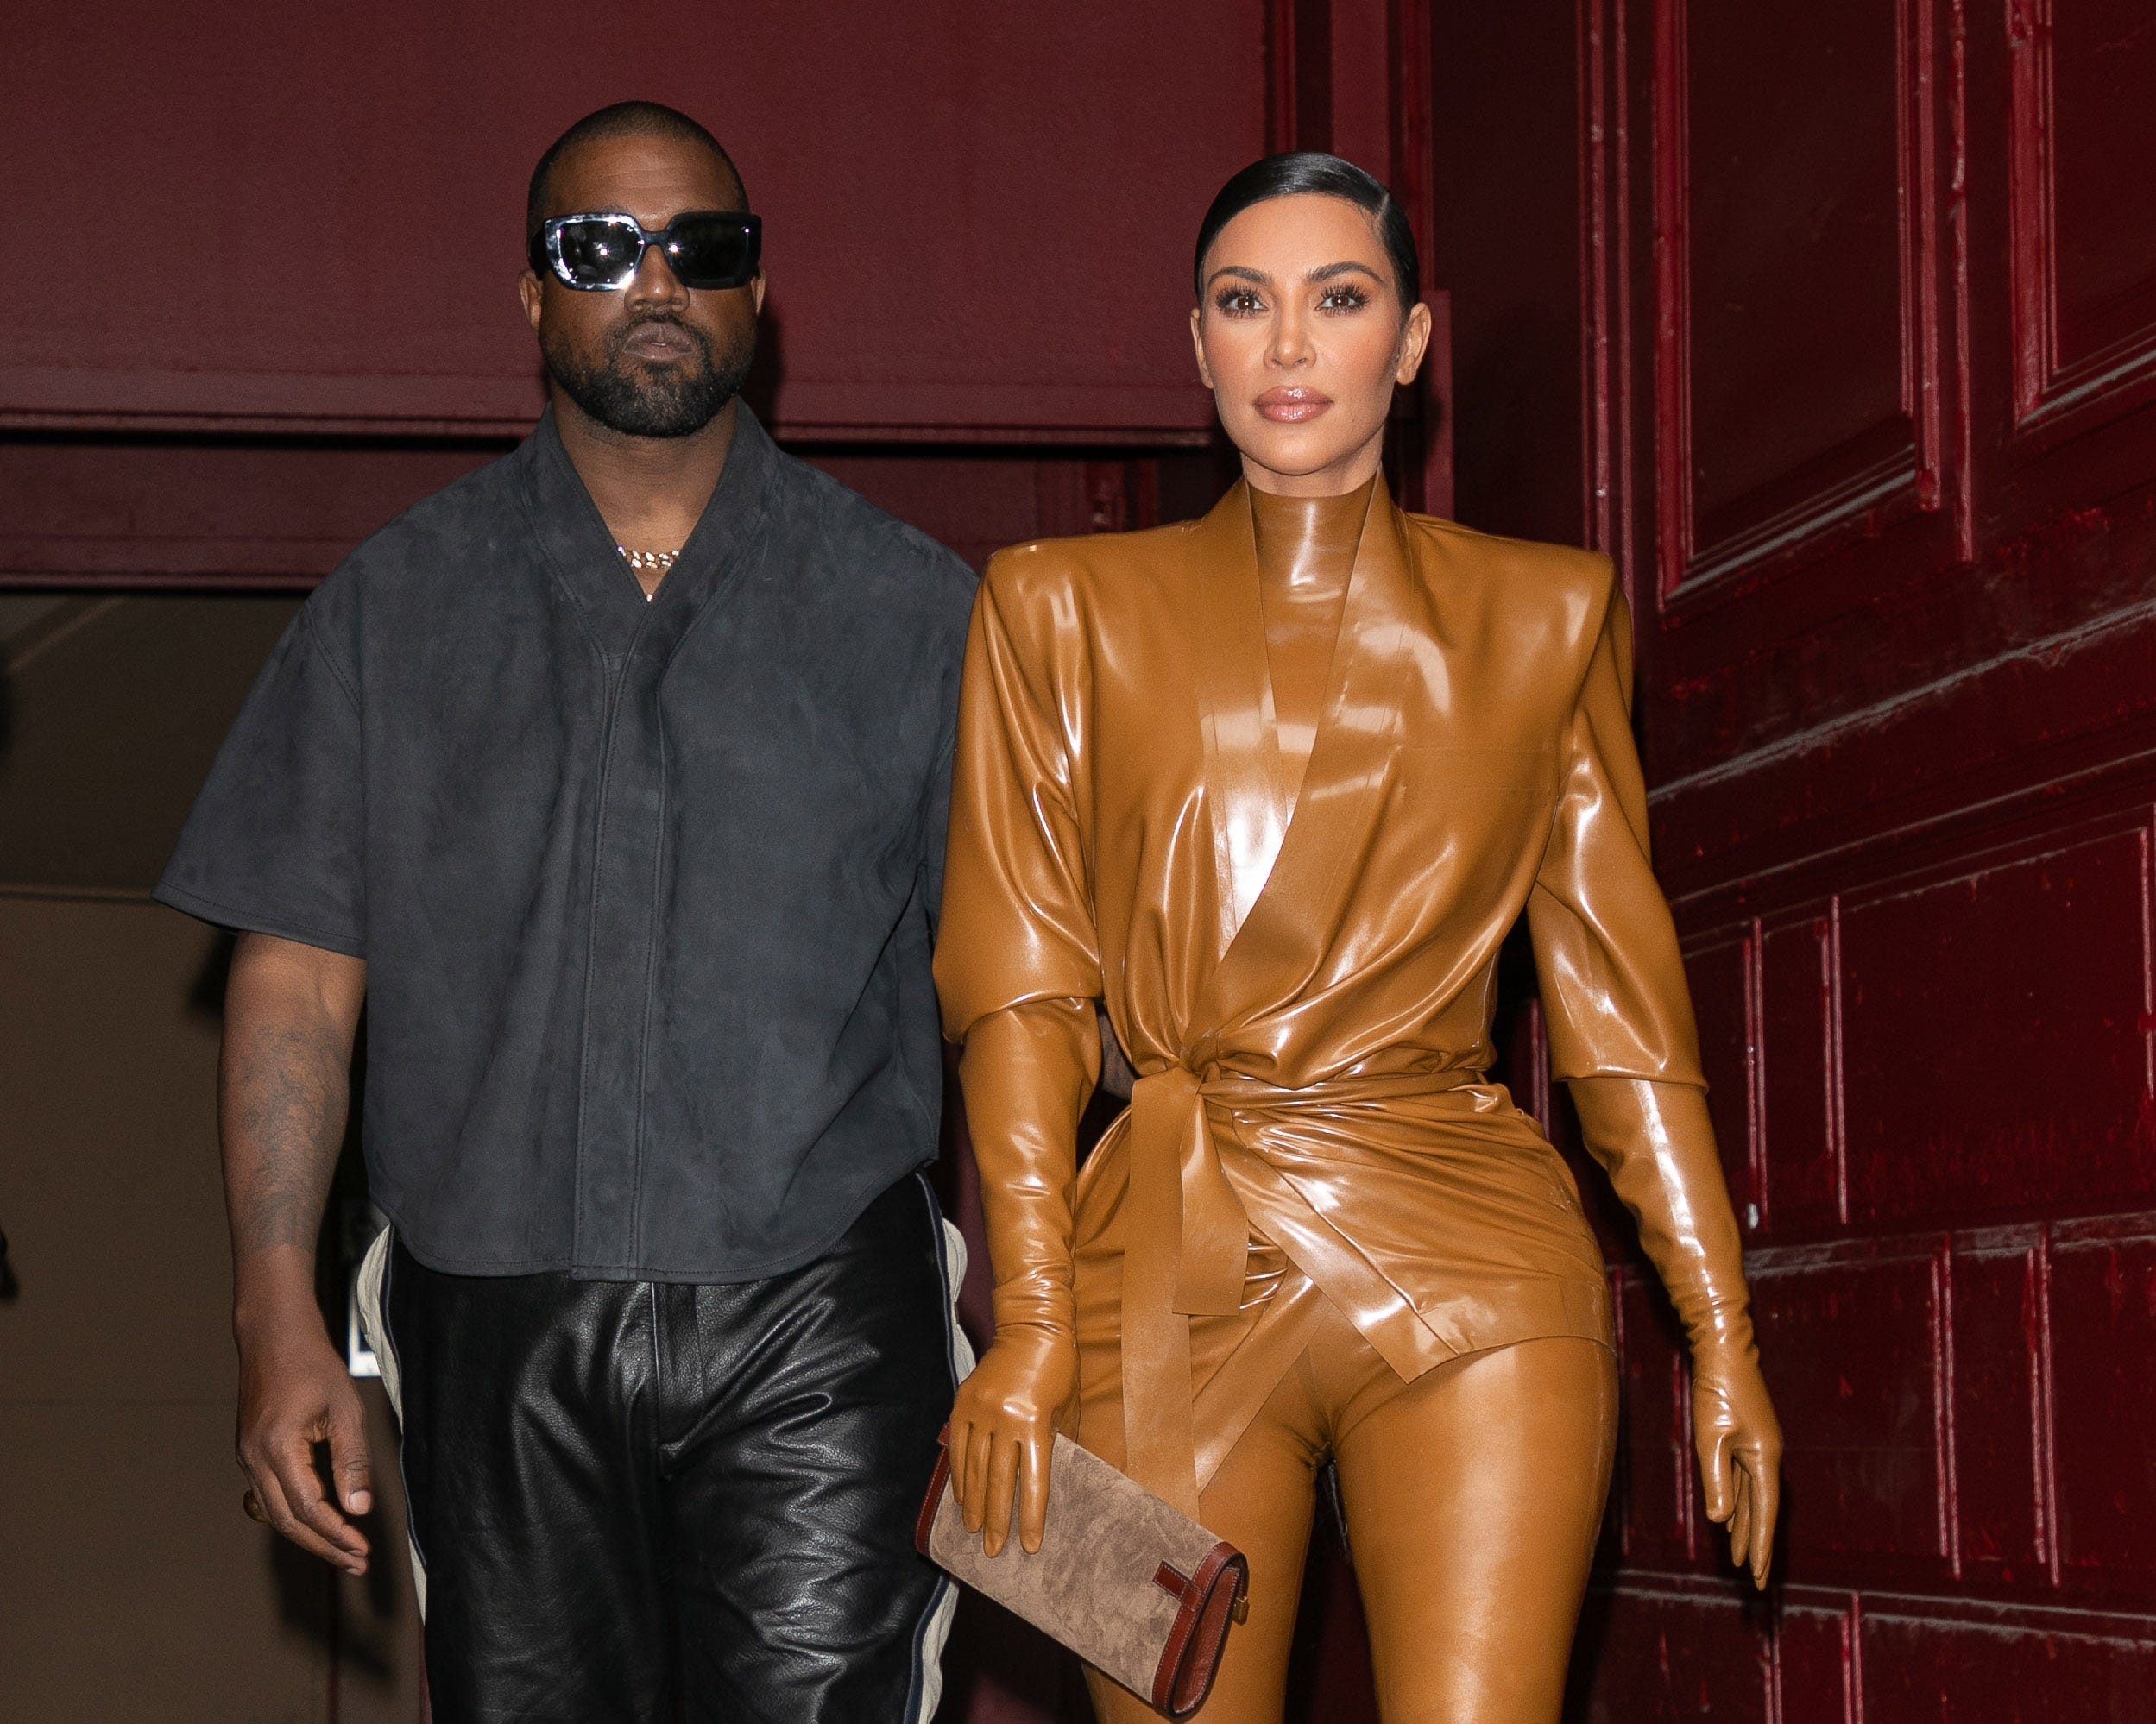 Cool or Creepy? Kanye West's hologram gift to Kim Kardashian splits the internet